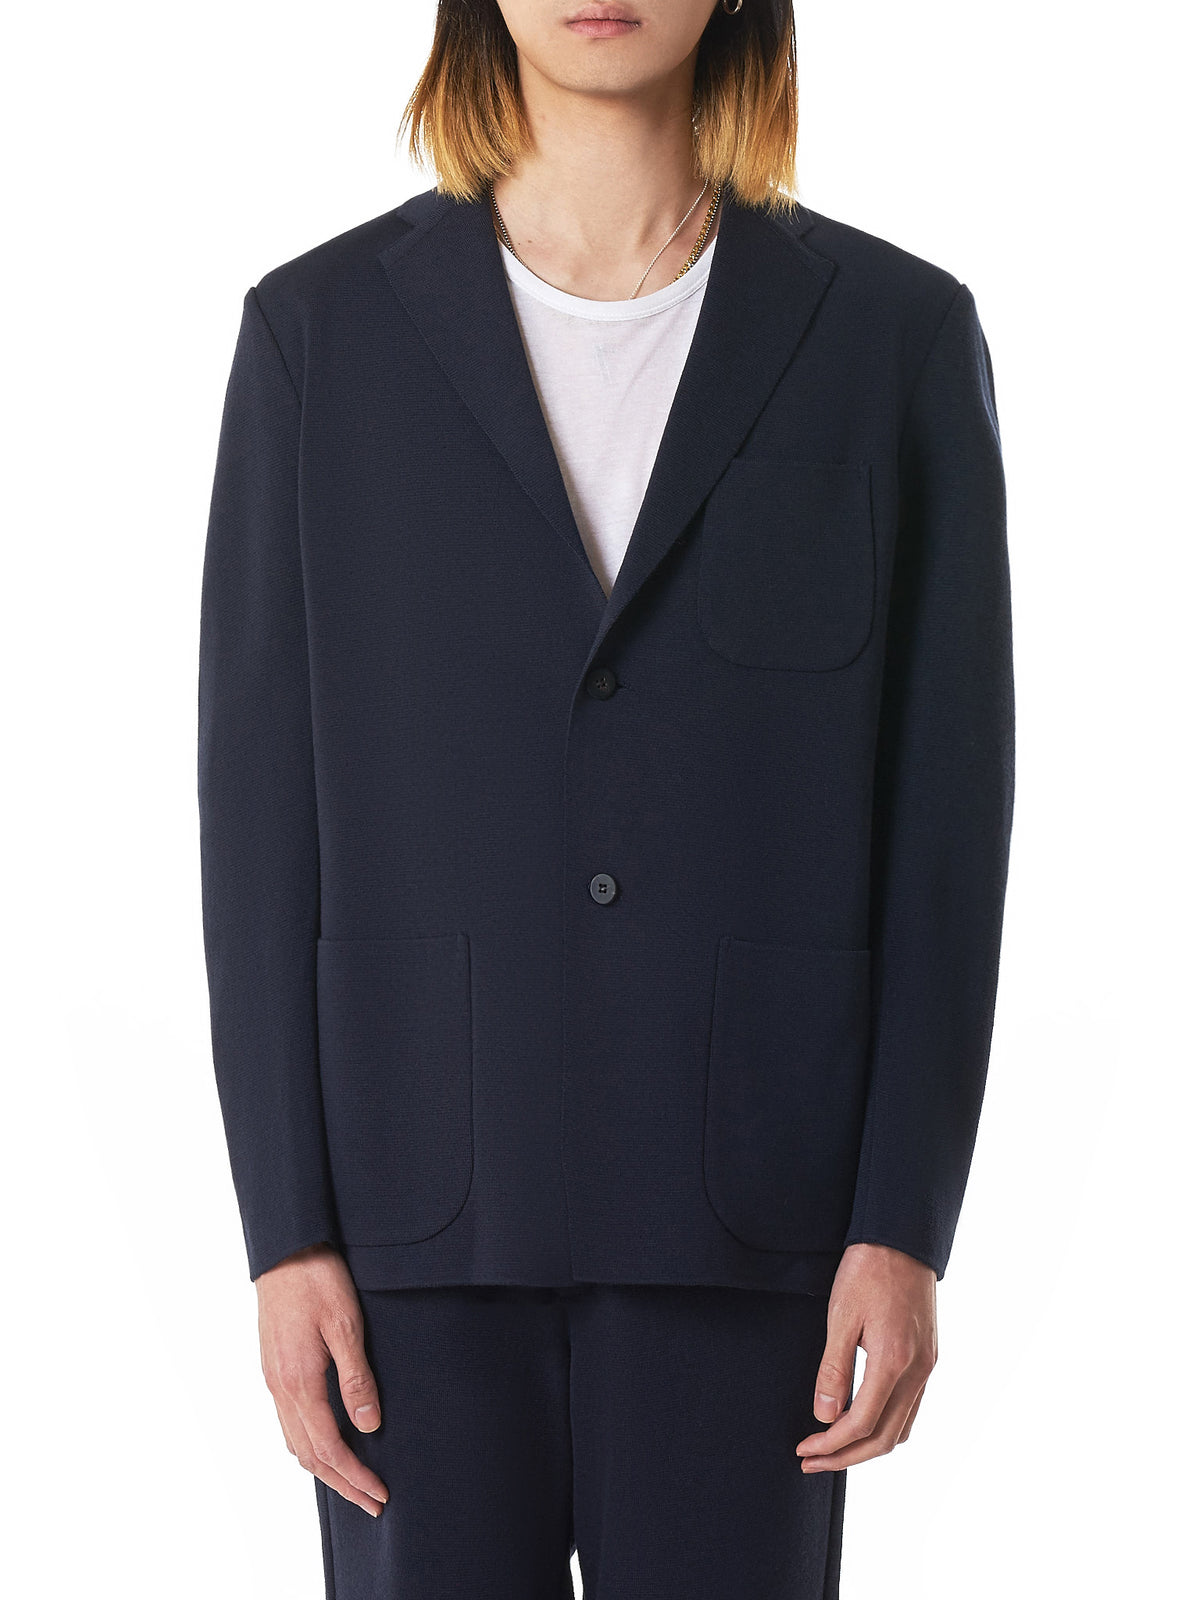 Knit Tailored Jacket (ME96KD005-75-NAVY)